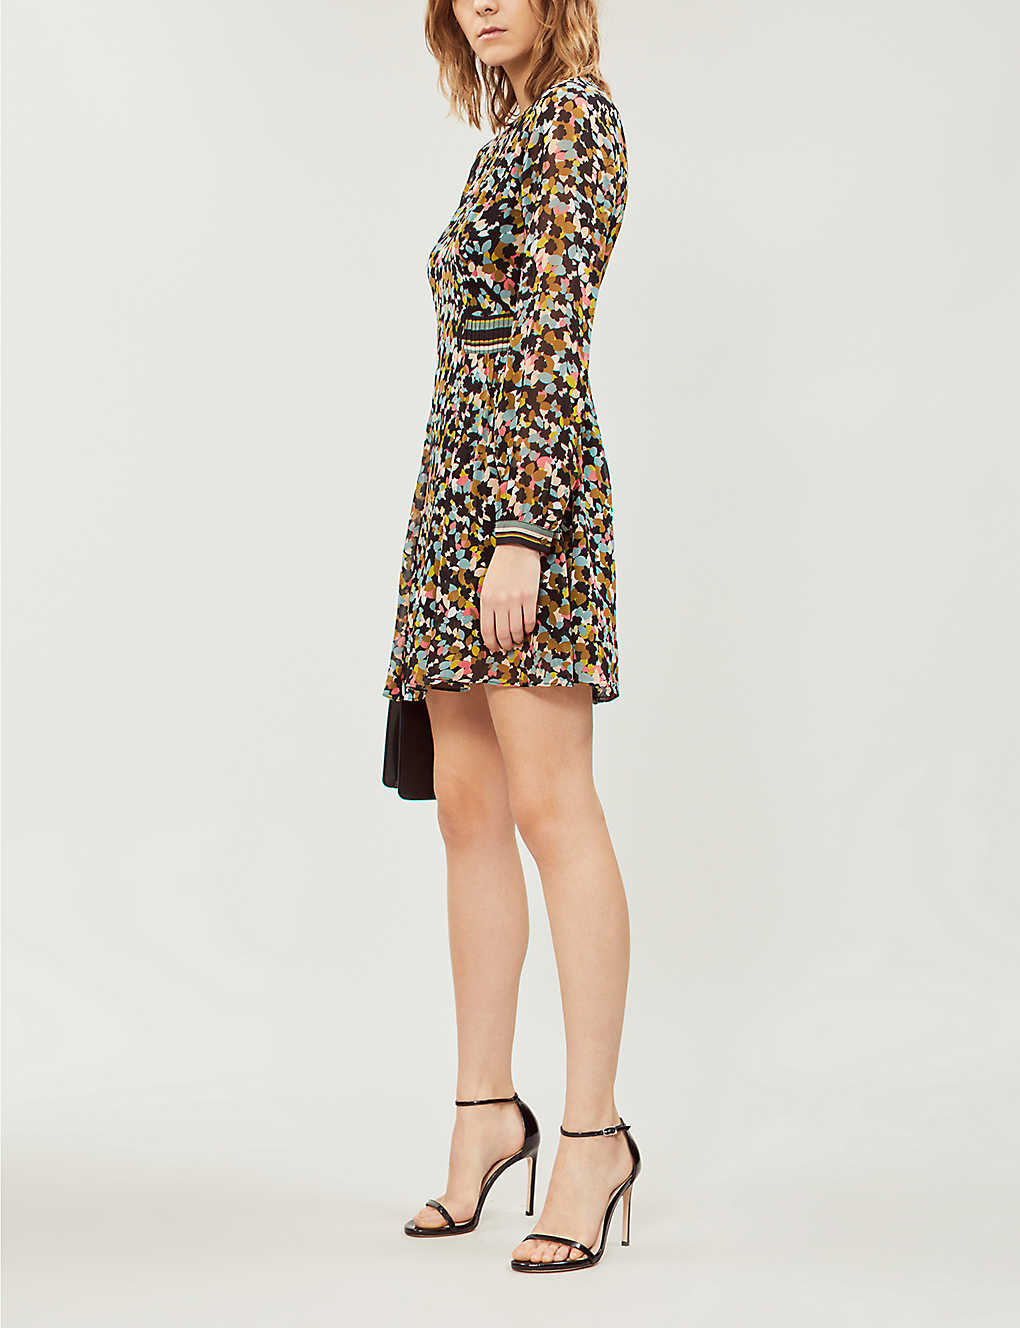 4f07c68021de2 REISS - Martina ditsy-print crepe dress | Selfridges.com